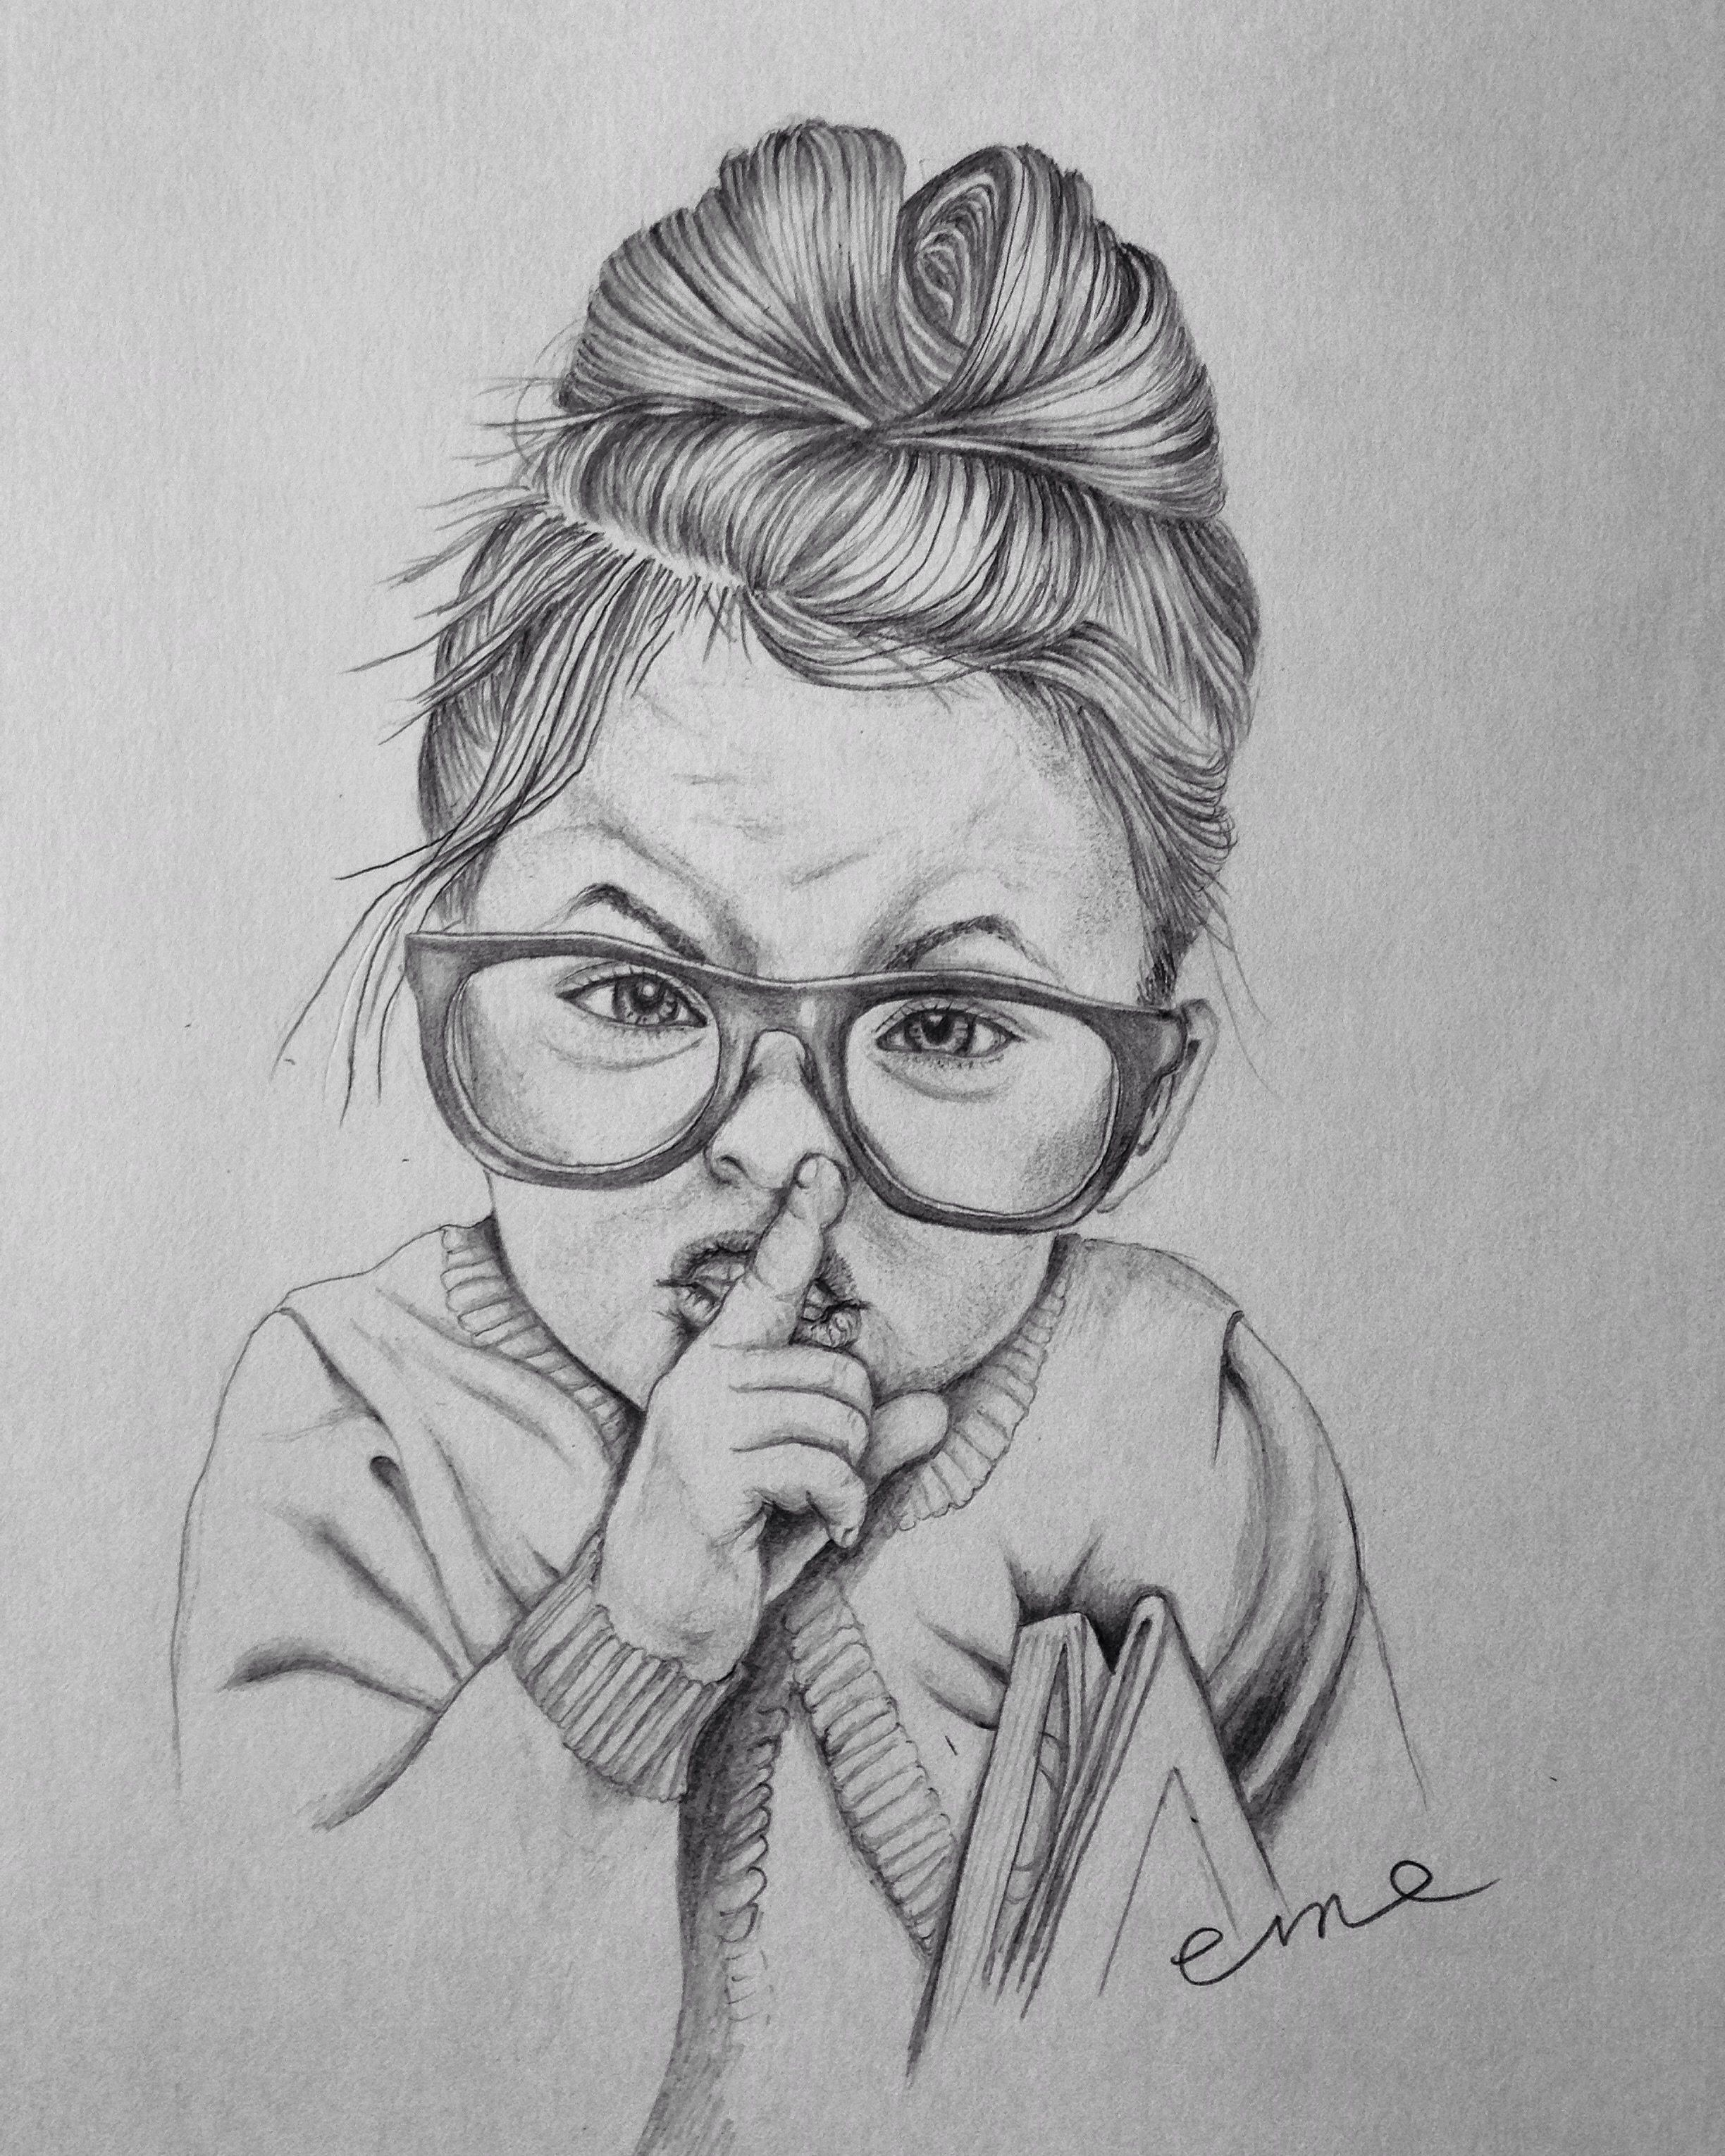 Pin By Eme On Art Art Drawings Sketches Creative Pencil Drawing Images Art Drawings Sketches Simple